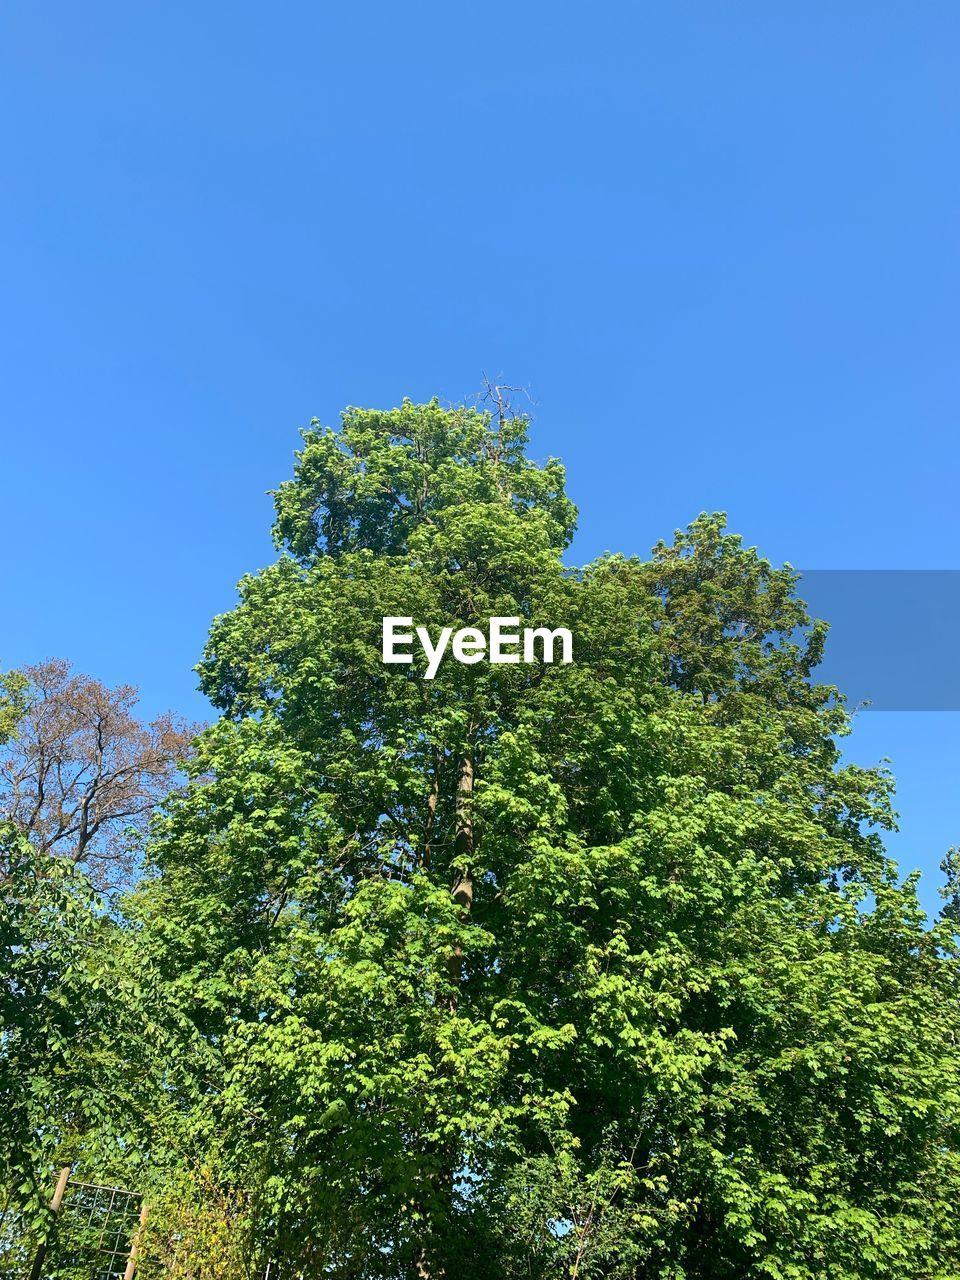 tree, plant, sky, growth, green color, low angle view, clear sky, beauty in nature, no people, nature, tranquility, day, blue, outdoors, copy space, foliage, sunlight, tranquil scene, lush foliage, scenics - nature